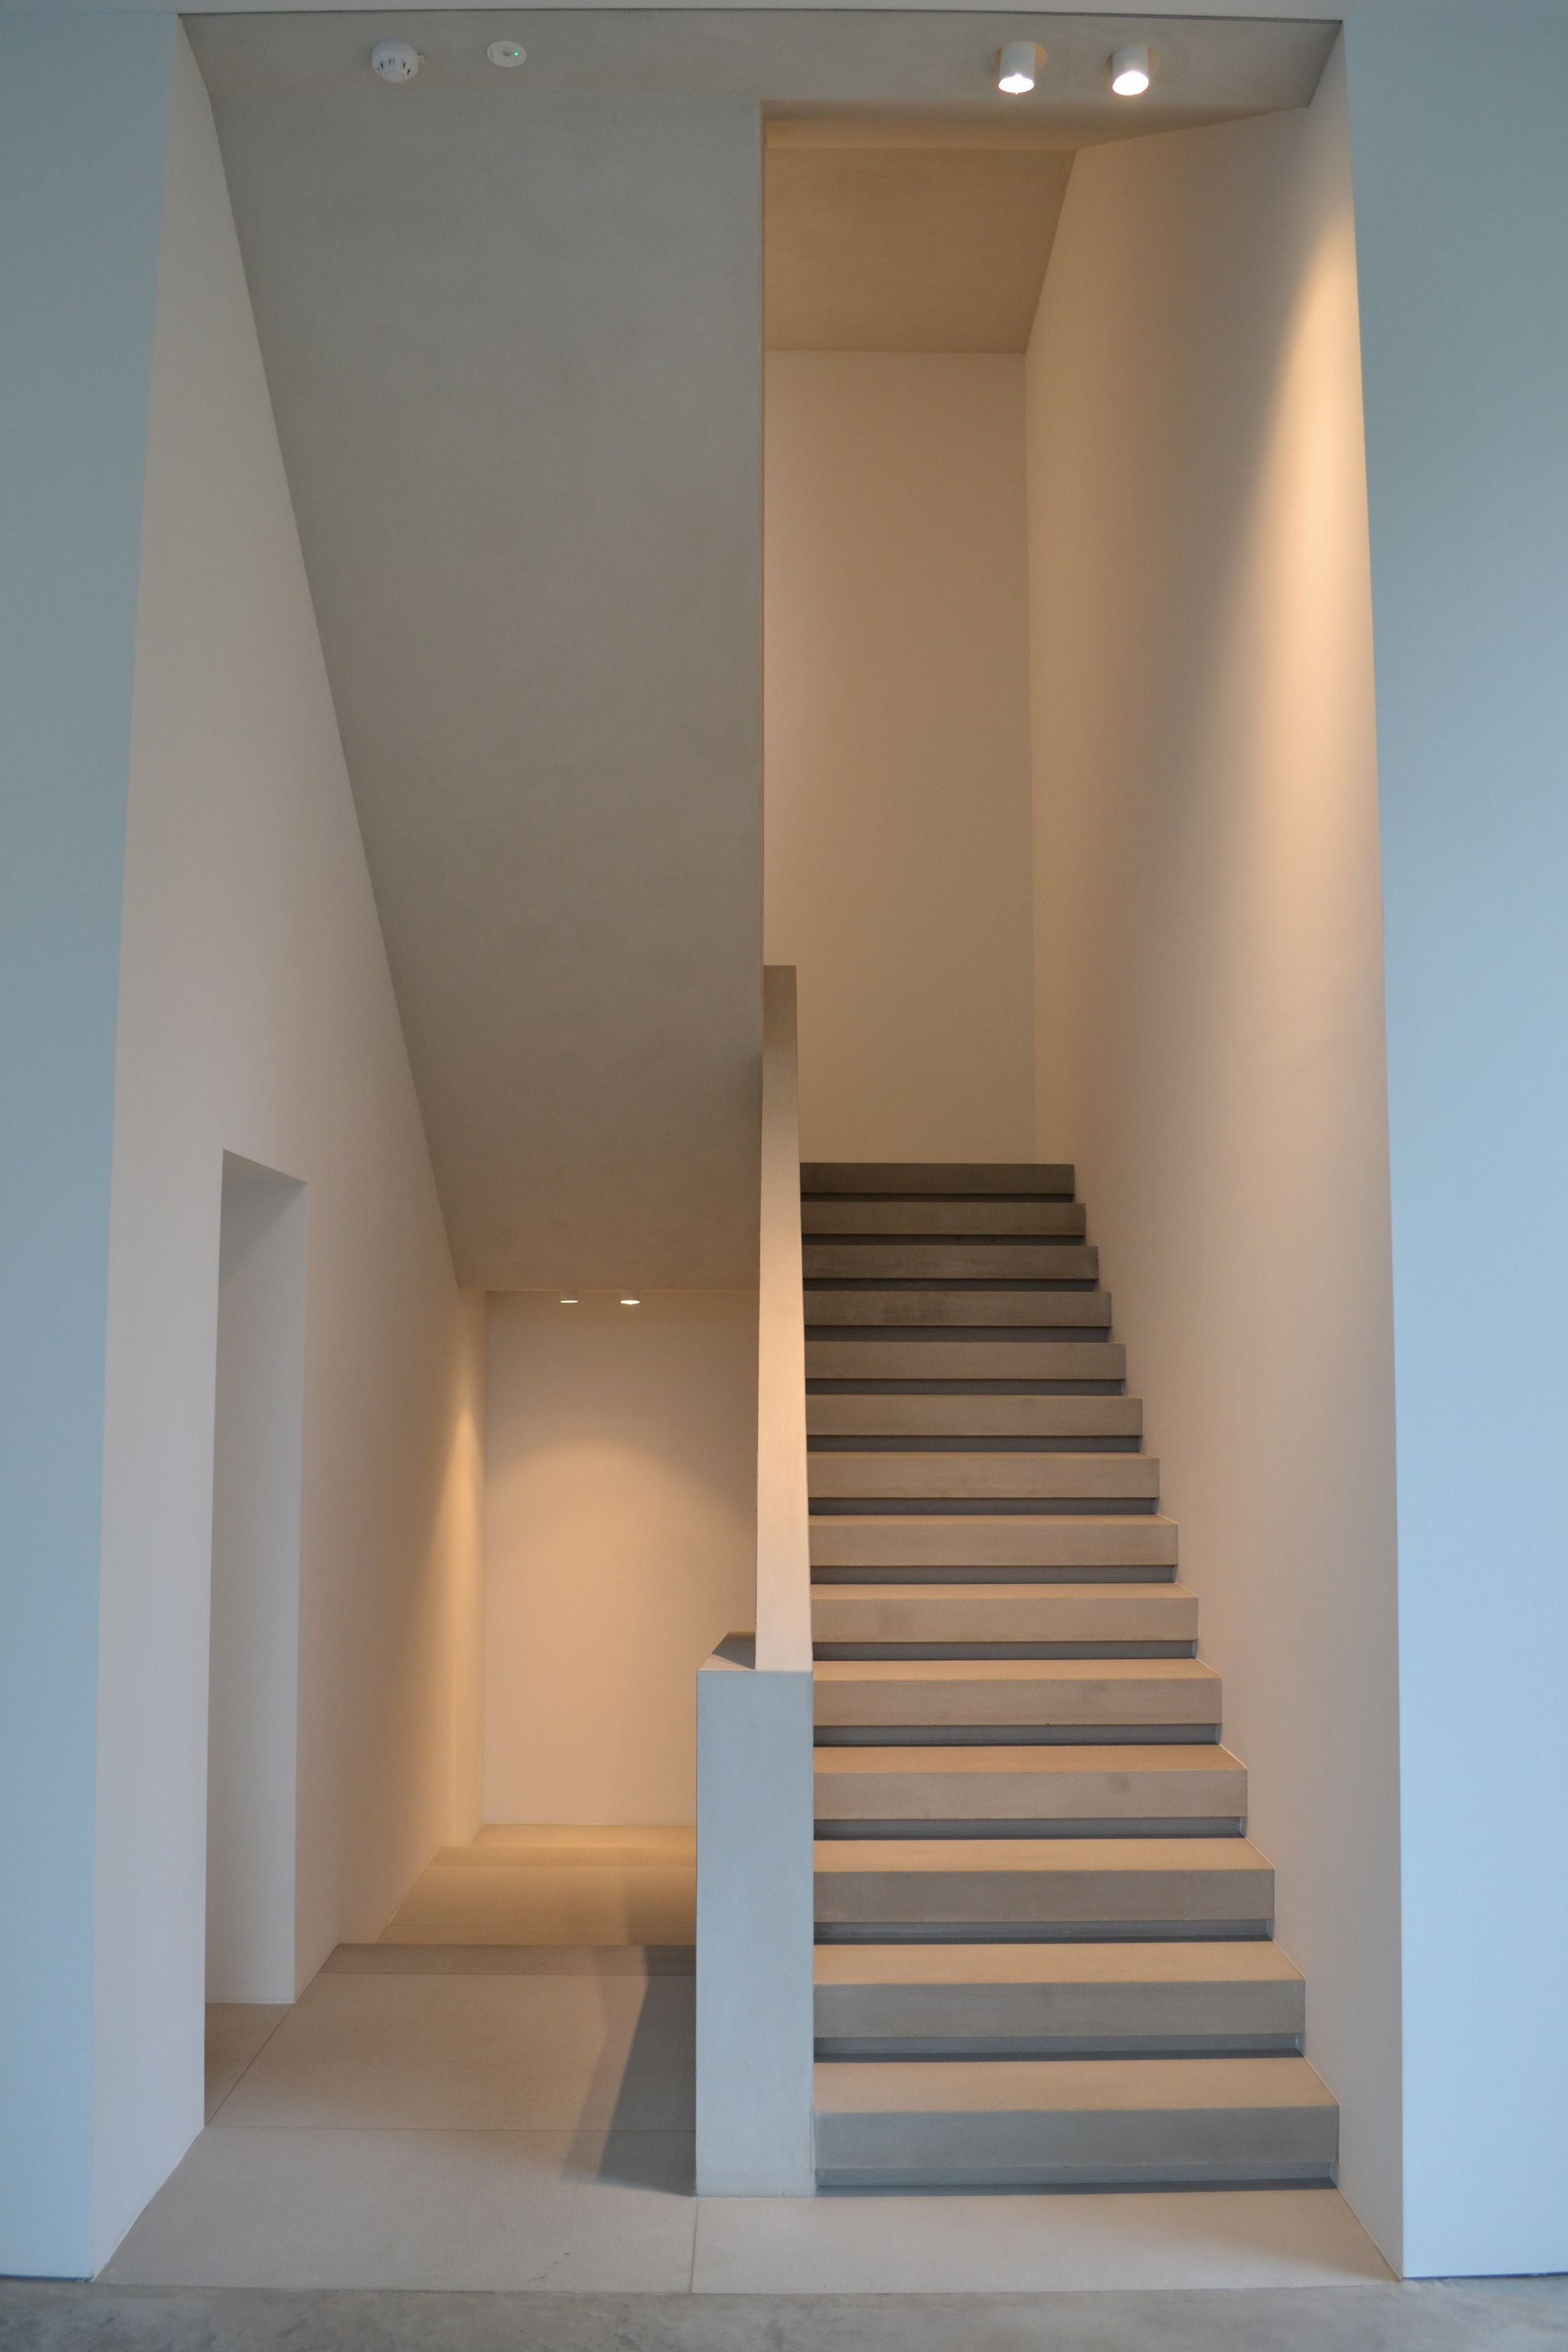 Staircases Design Stairs Gallery Lannoo In Ghent By Glenn Sestig